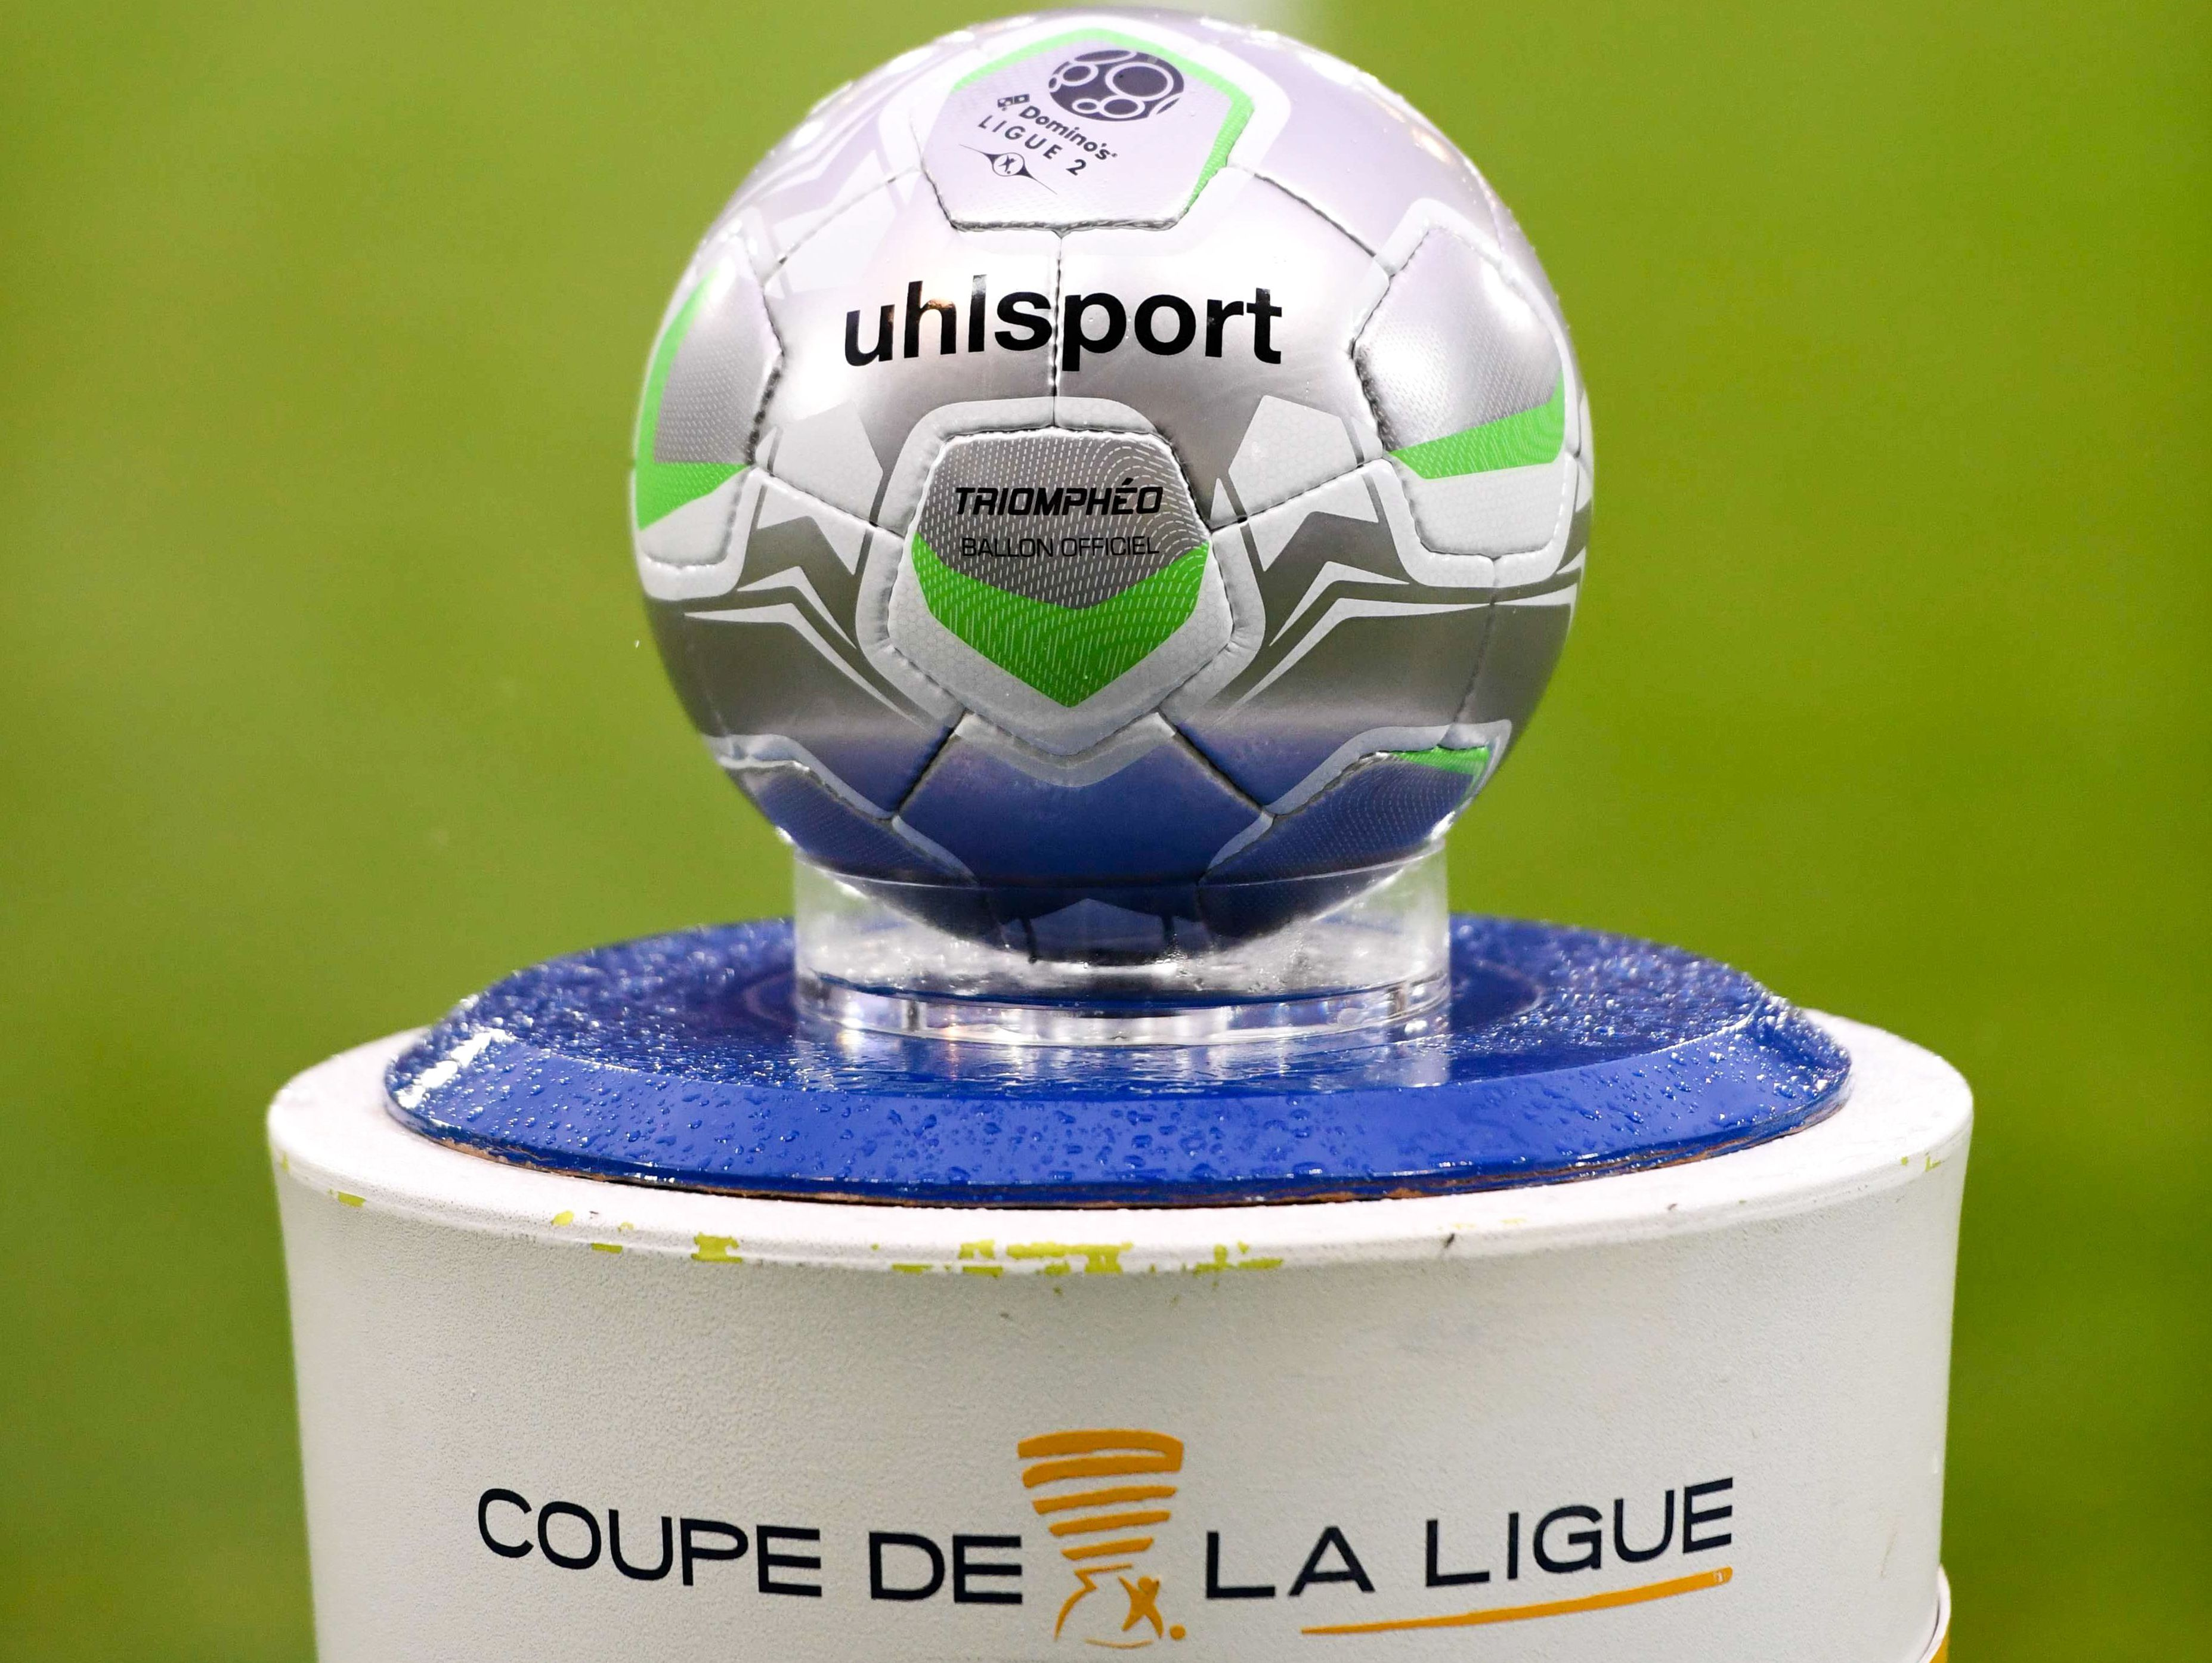 Coupe de la ligue le 2e tour en direct coupe de la ligue football - Resultat coupe de la ligue en direct ...